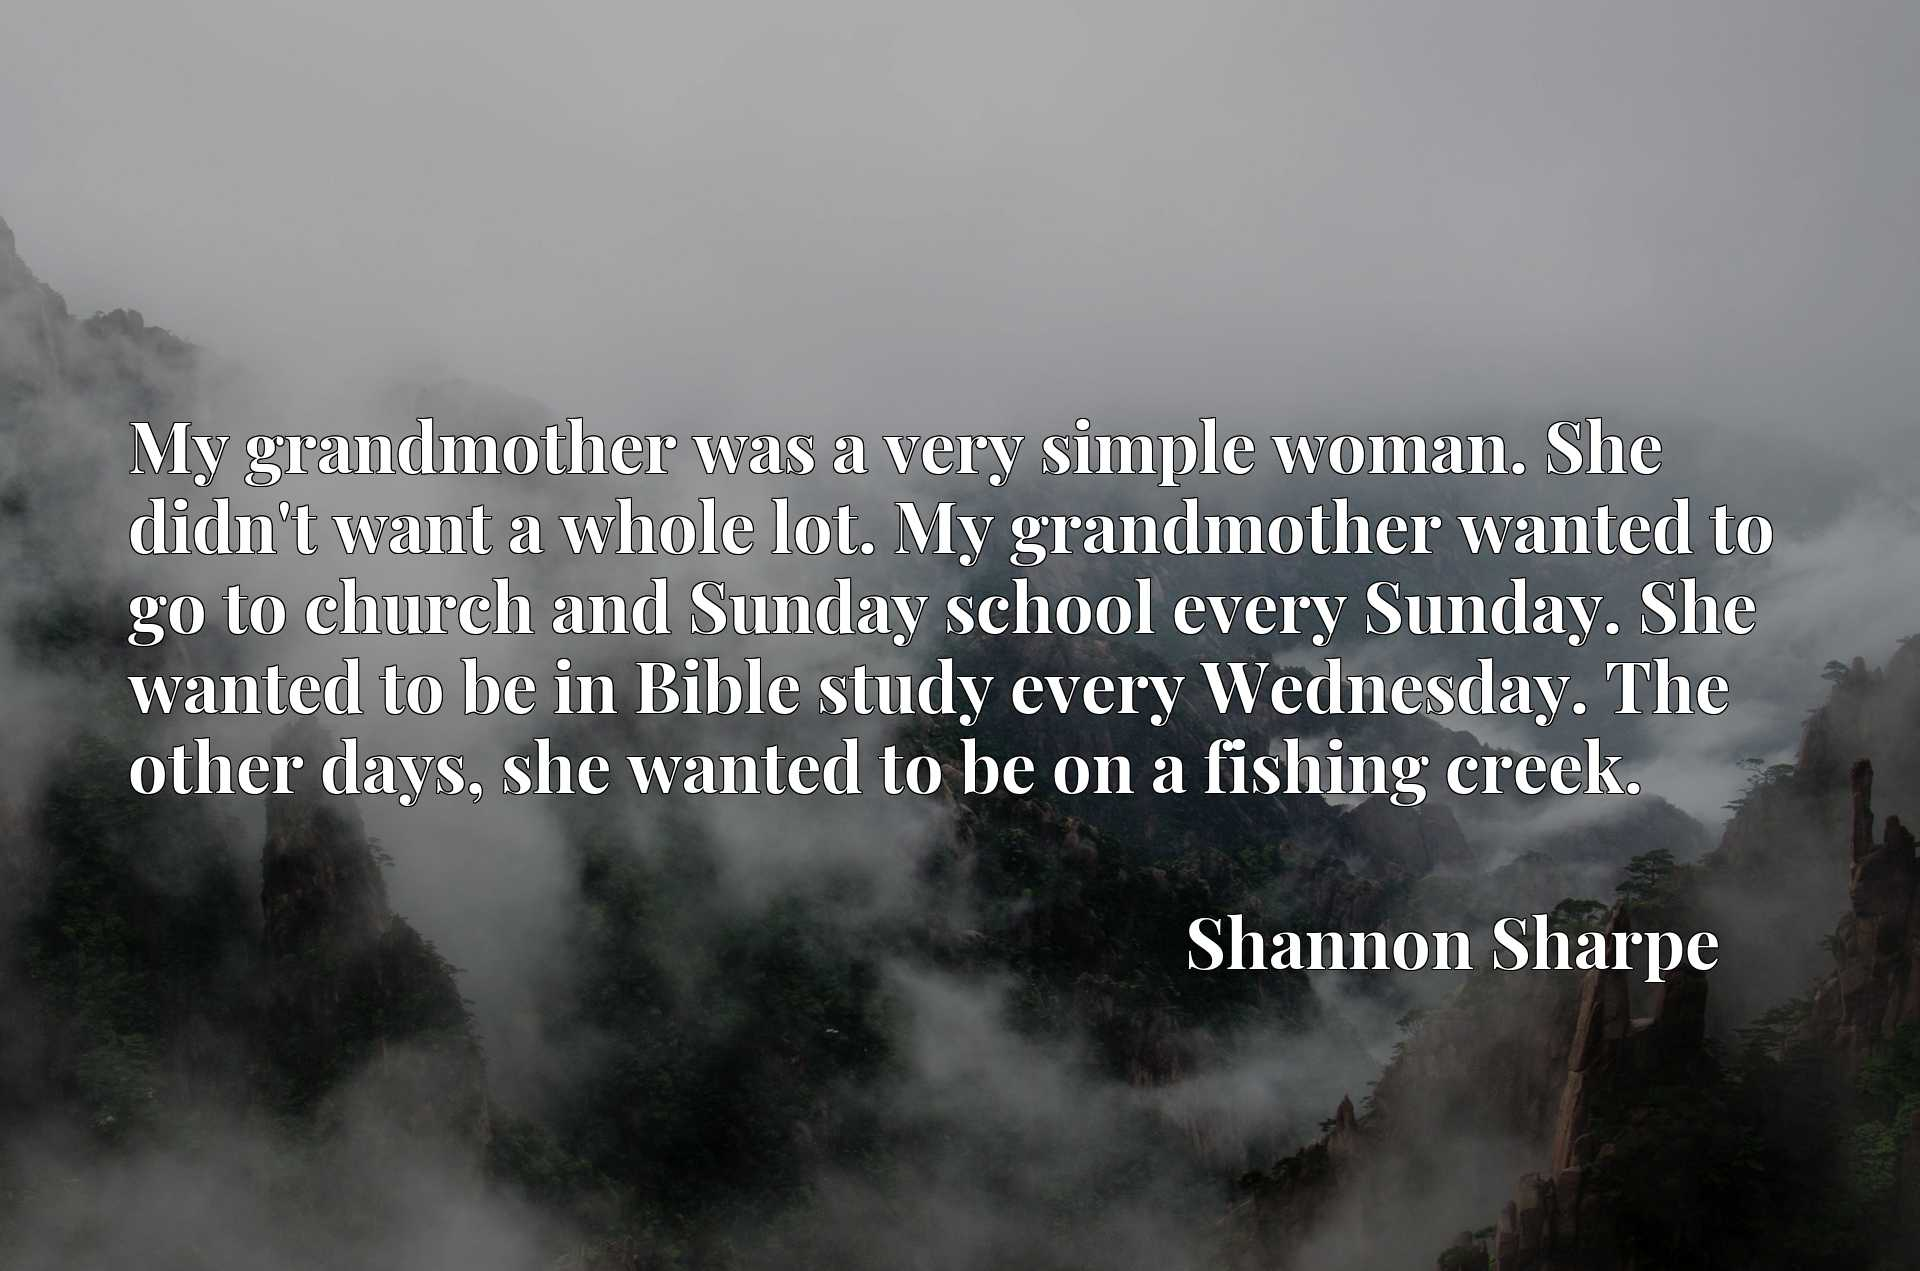 My grandmother was a very simple woman. She didn't want a whole lot. My grandmother wanted to go to church and Sunday school every Sunday. She wanted to be in Bible study every Wednesday. The other days, she wanted to be on a fishing creek.